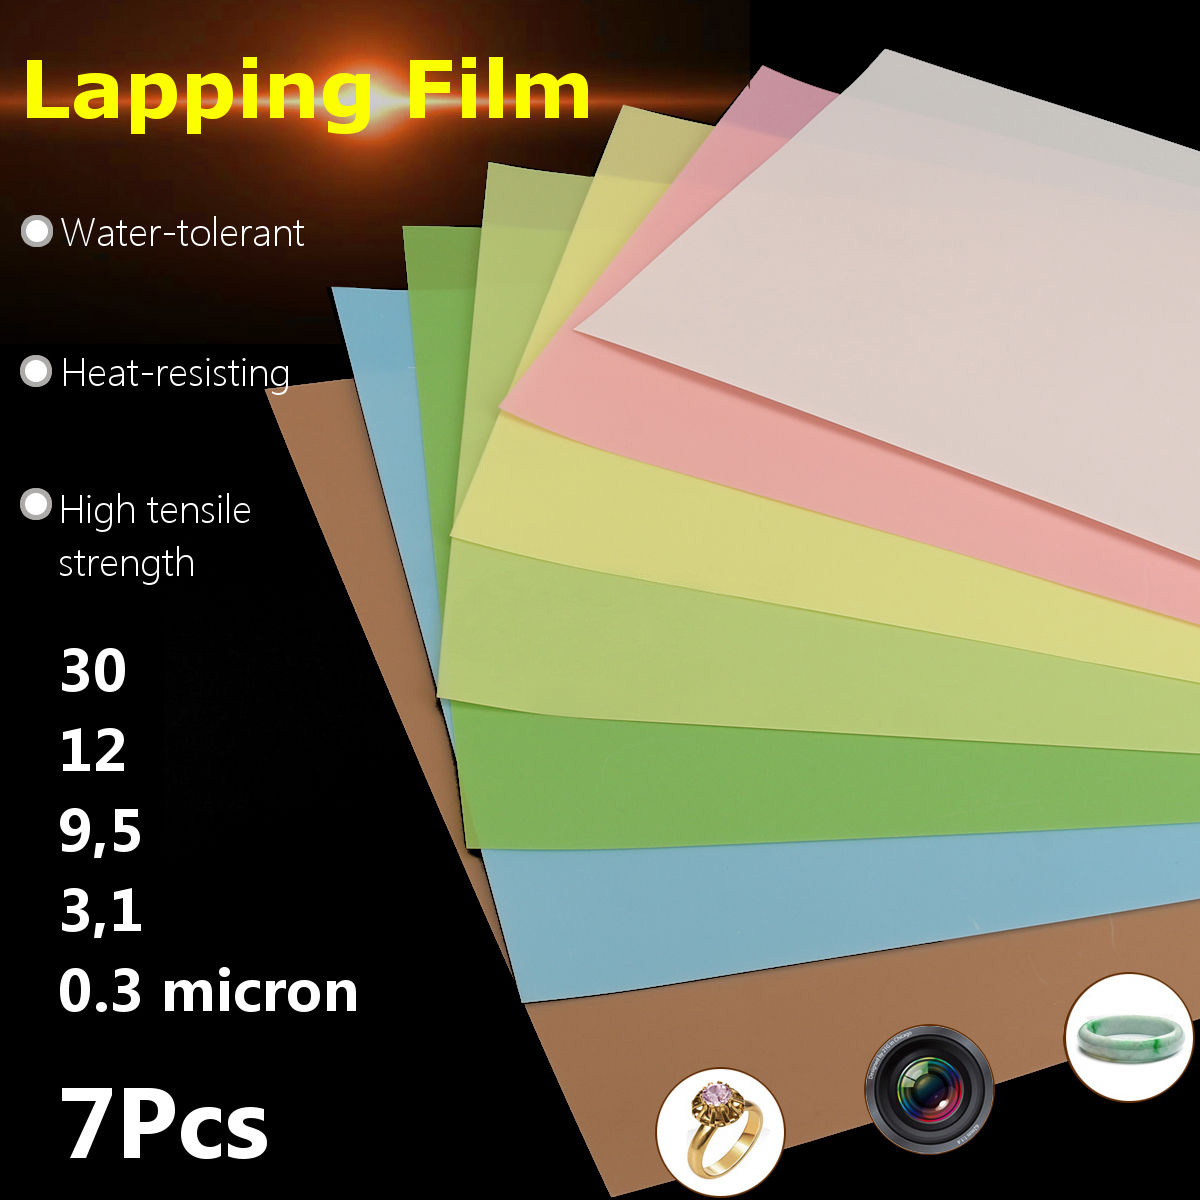 7pcs 8.7 X 11inch Lapping Film Sheets Assortment Precision For Polishing Sandpaper 1500/2000/4000/6000/8000/10000/12000 Grits